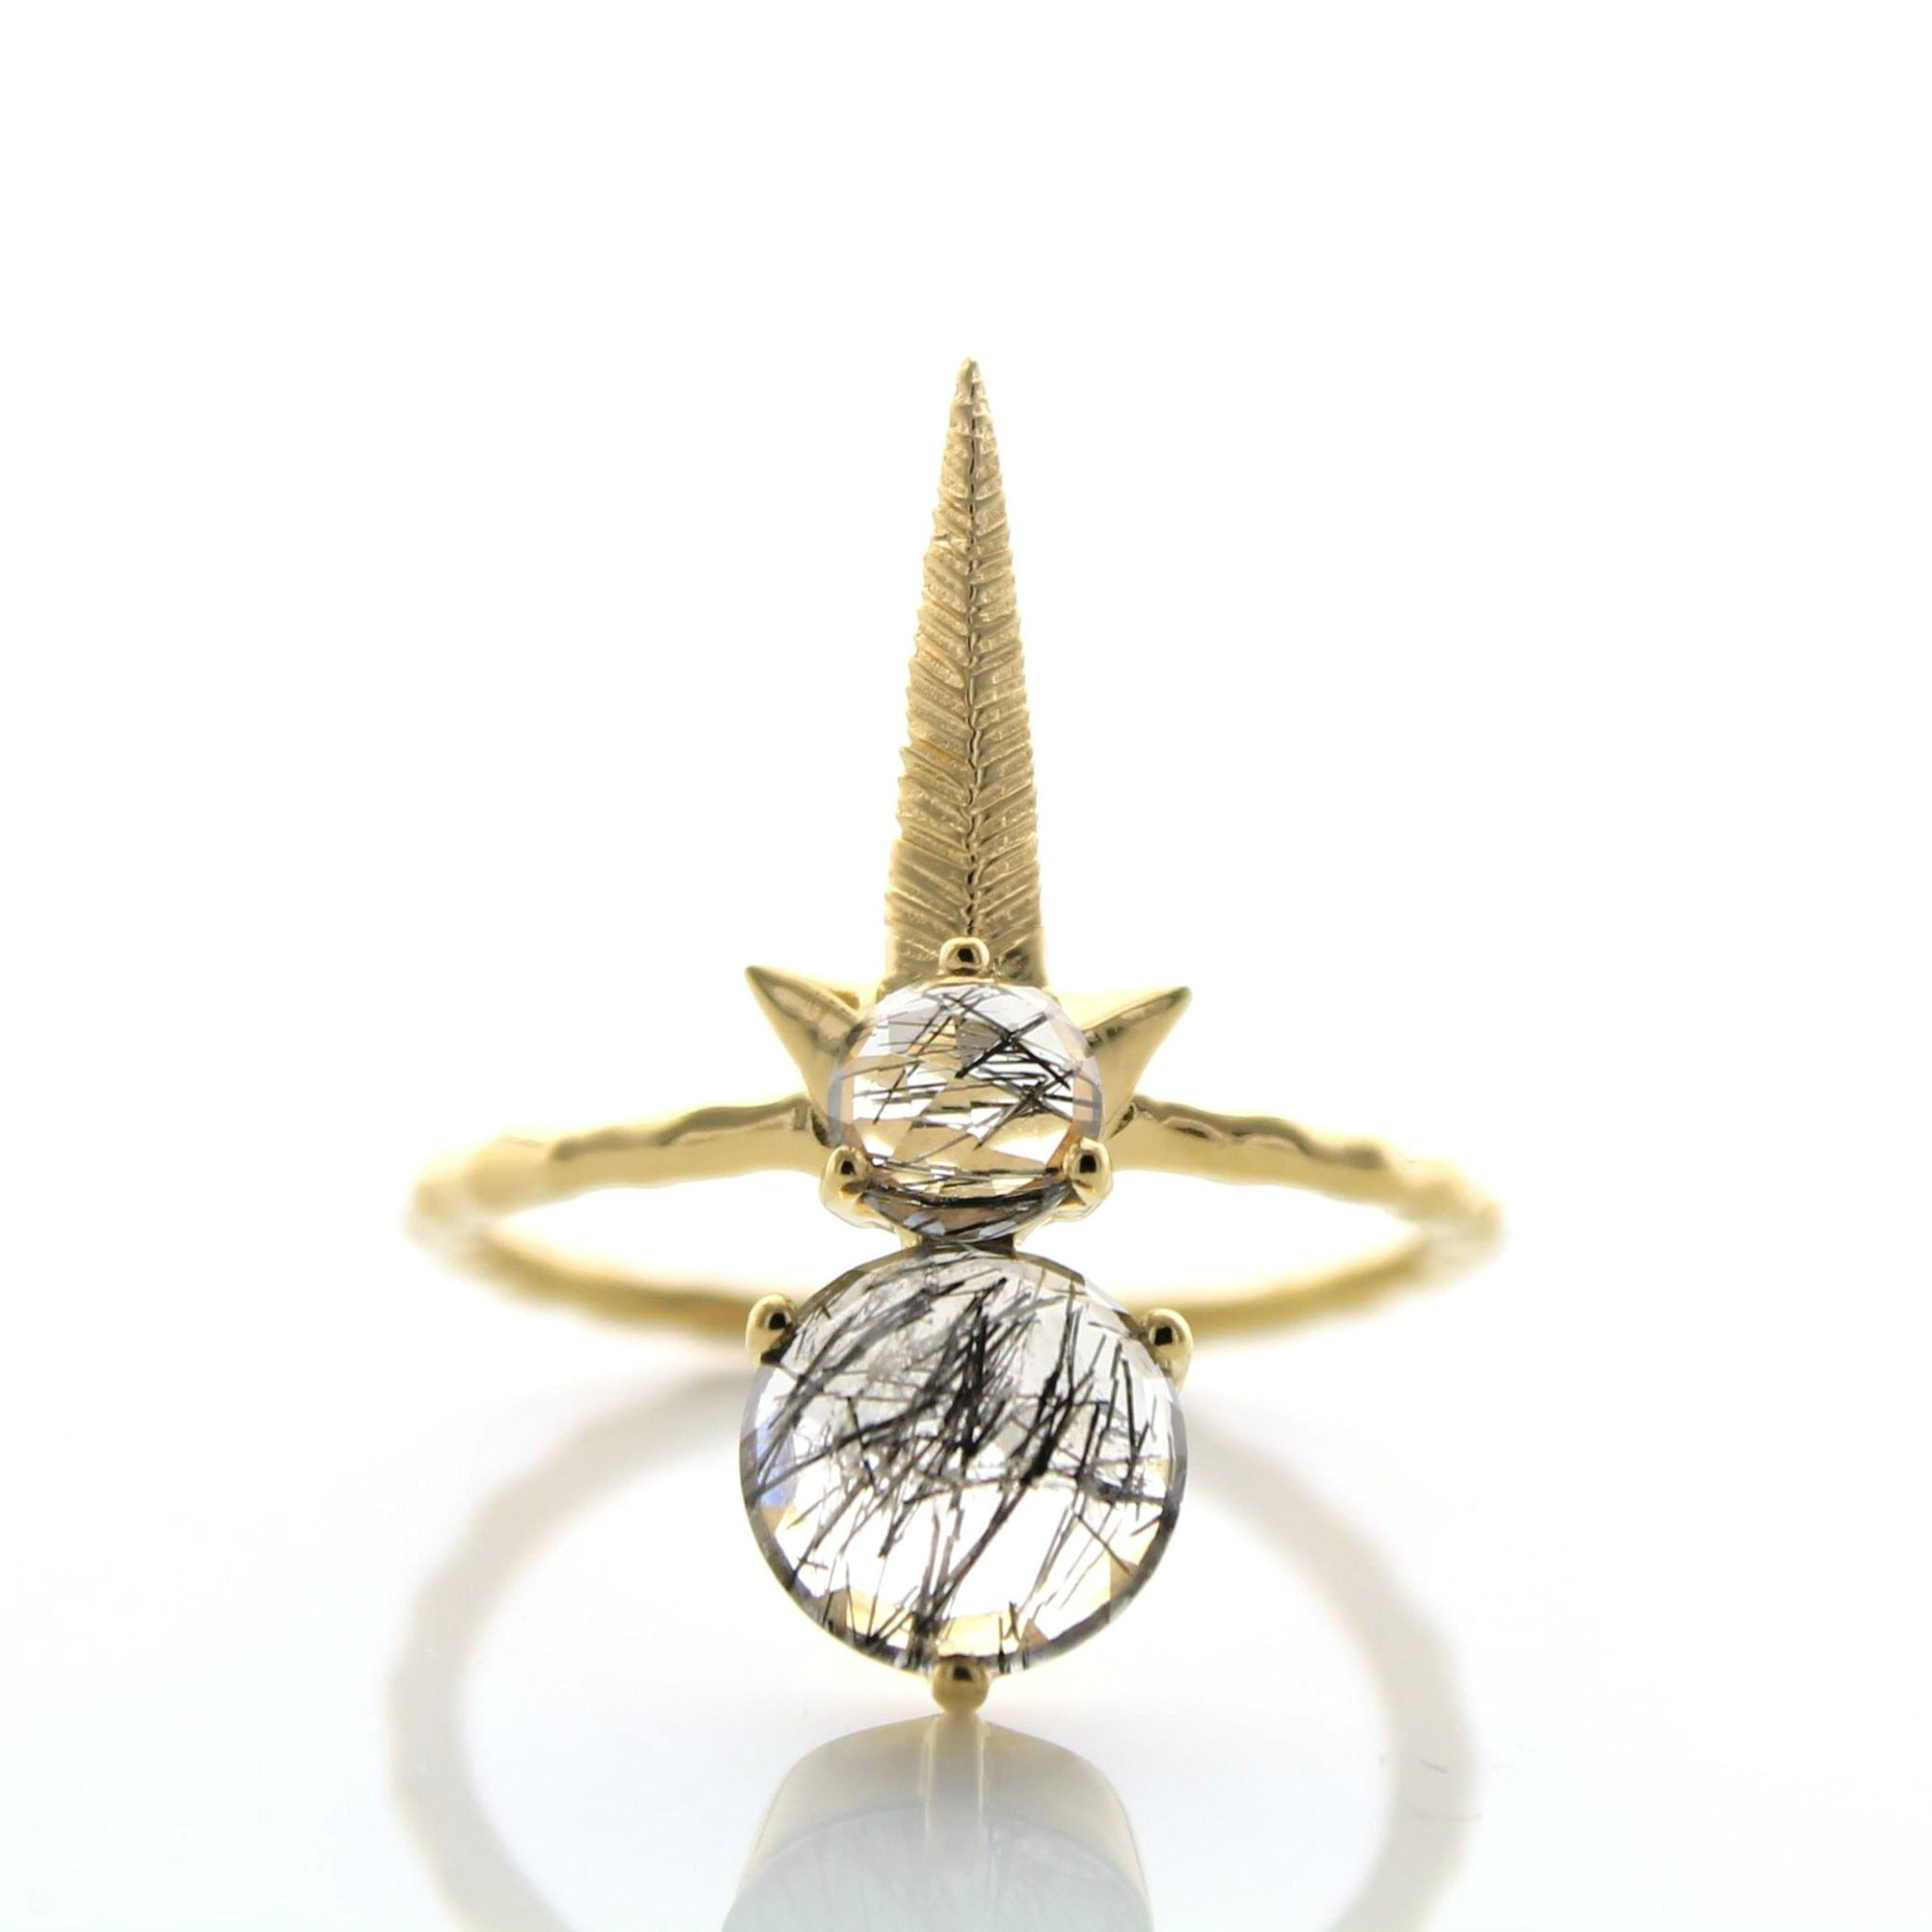 WONDER FALLING STAR RING - BLACK RUTILE QUARTZ & GOLD - SO PRETTY CARA COTTER